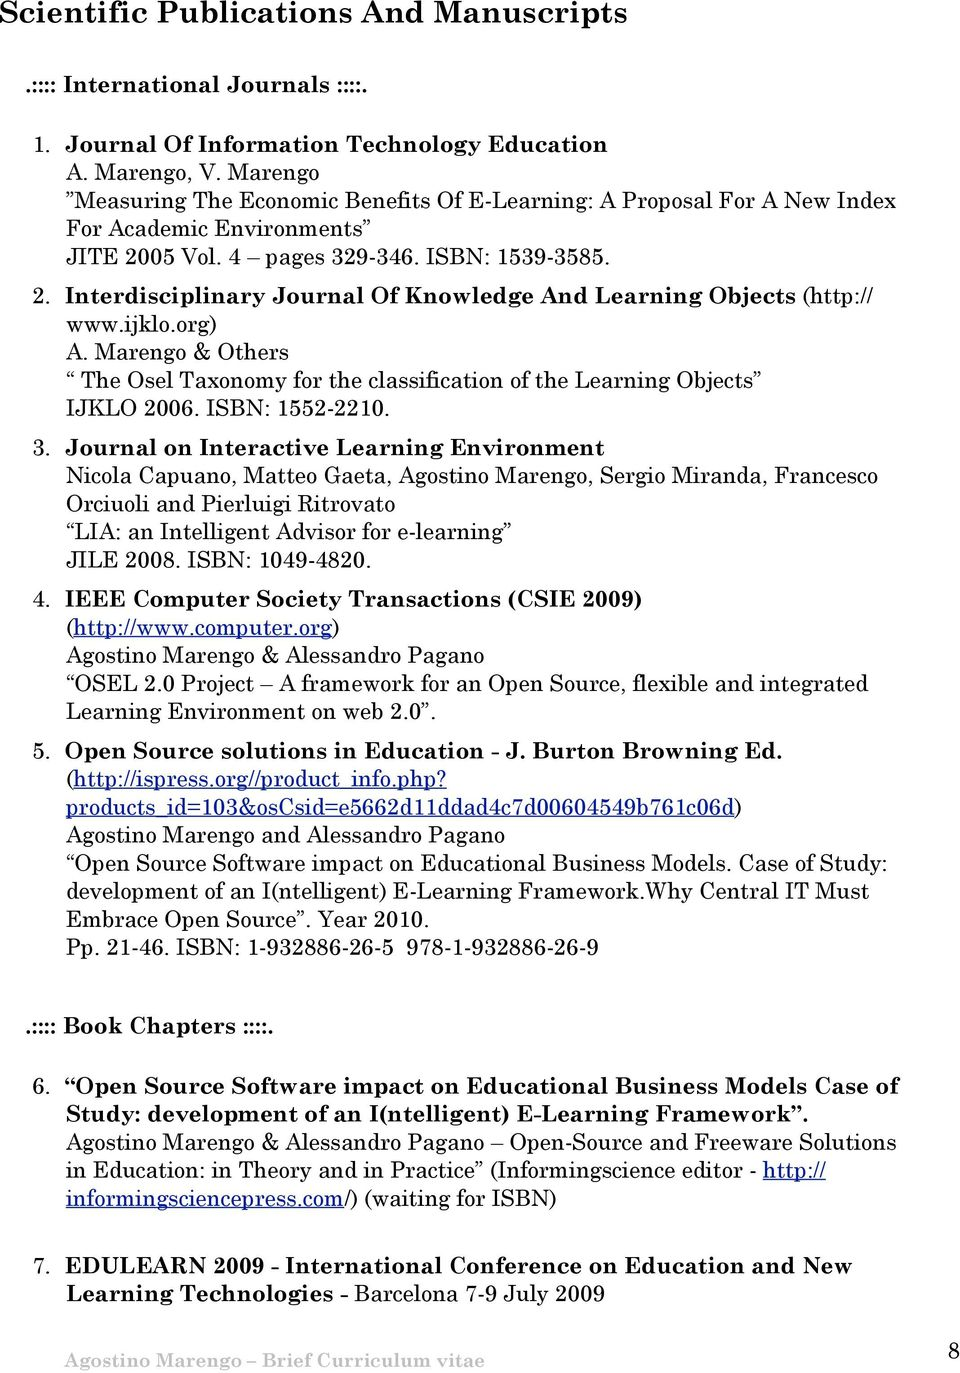 ijklo.org) A. Marengo & Others The Osel Taxonomy for the classification of the Learning Objects IJKLO 2006. ISBN: 1552-2210. 3.